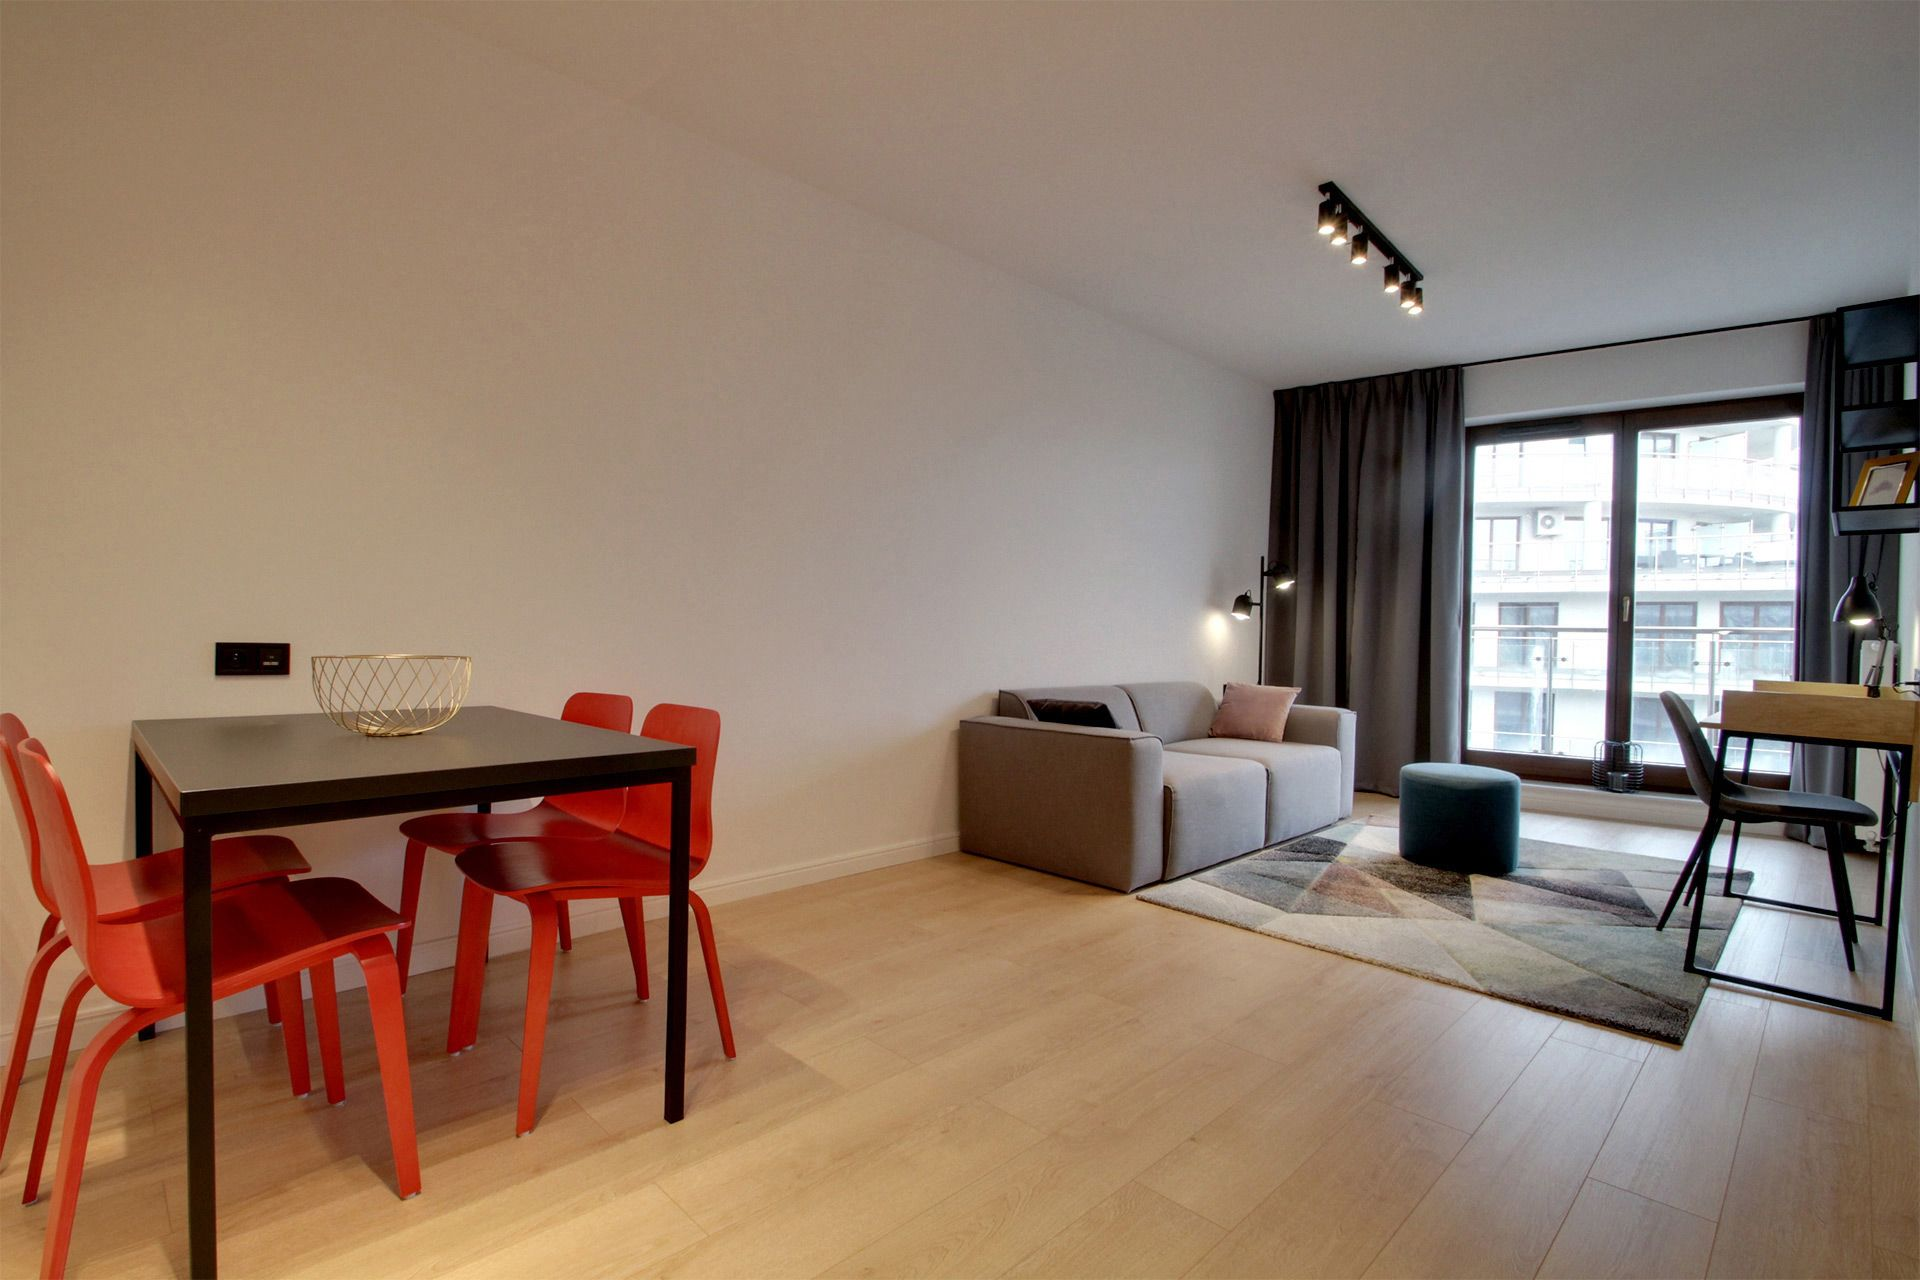 2 Bedroom - Large apartment to rent in Warsaw UPR-A-053-2